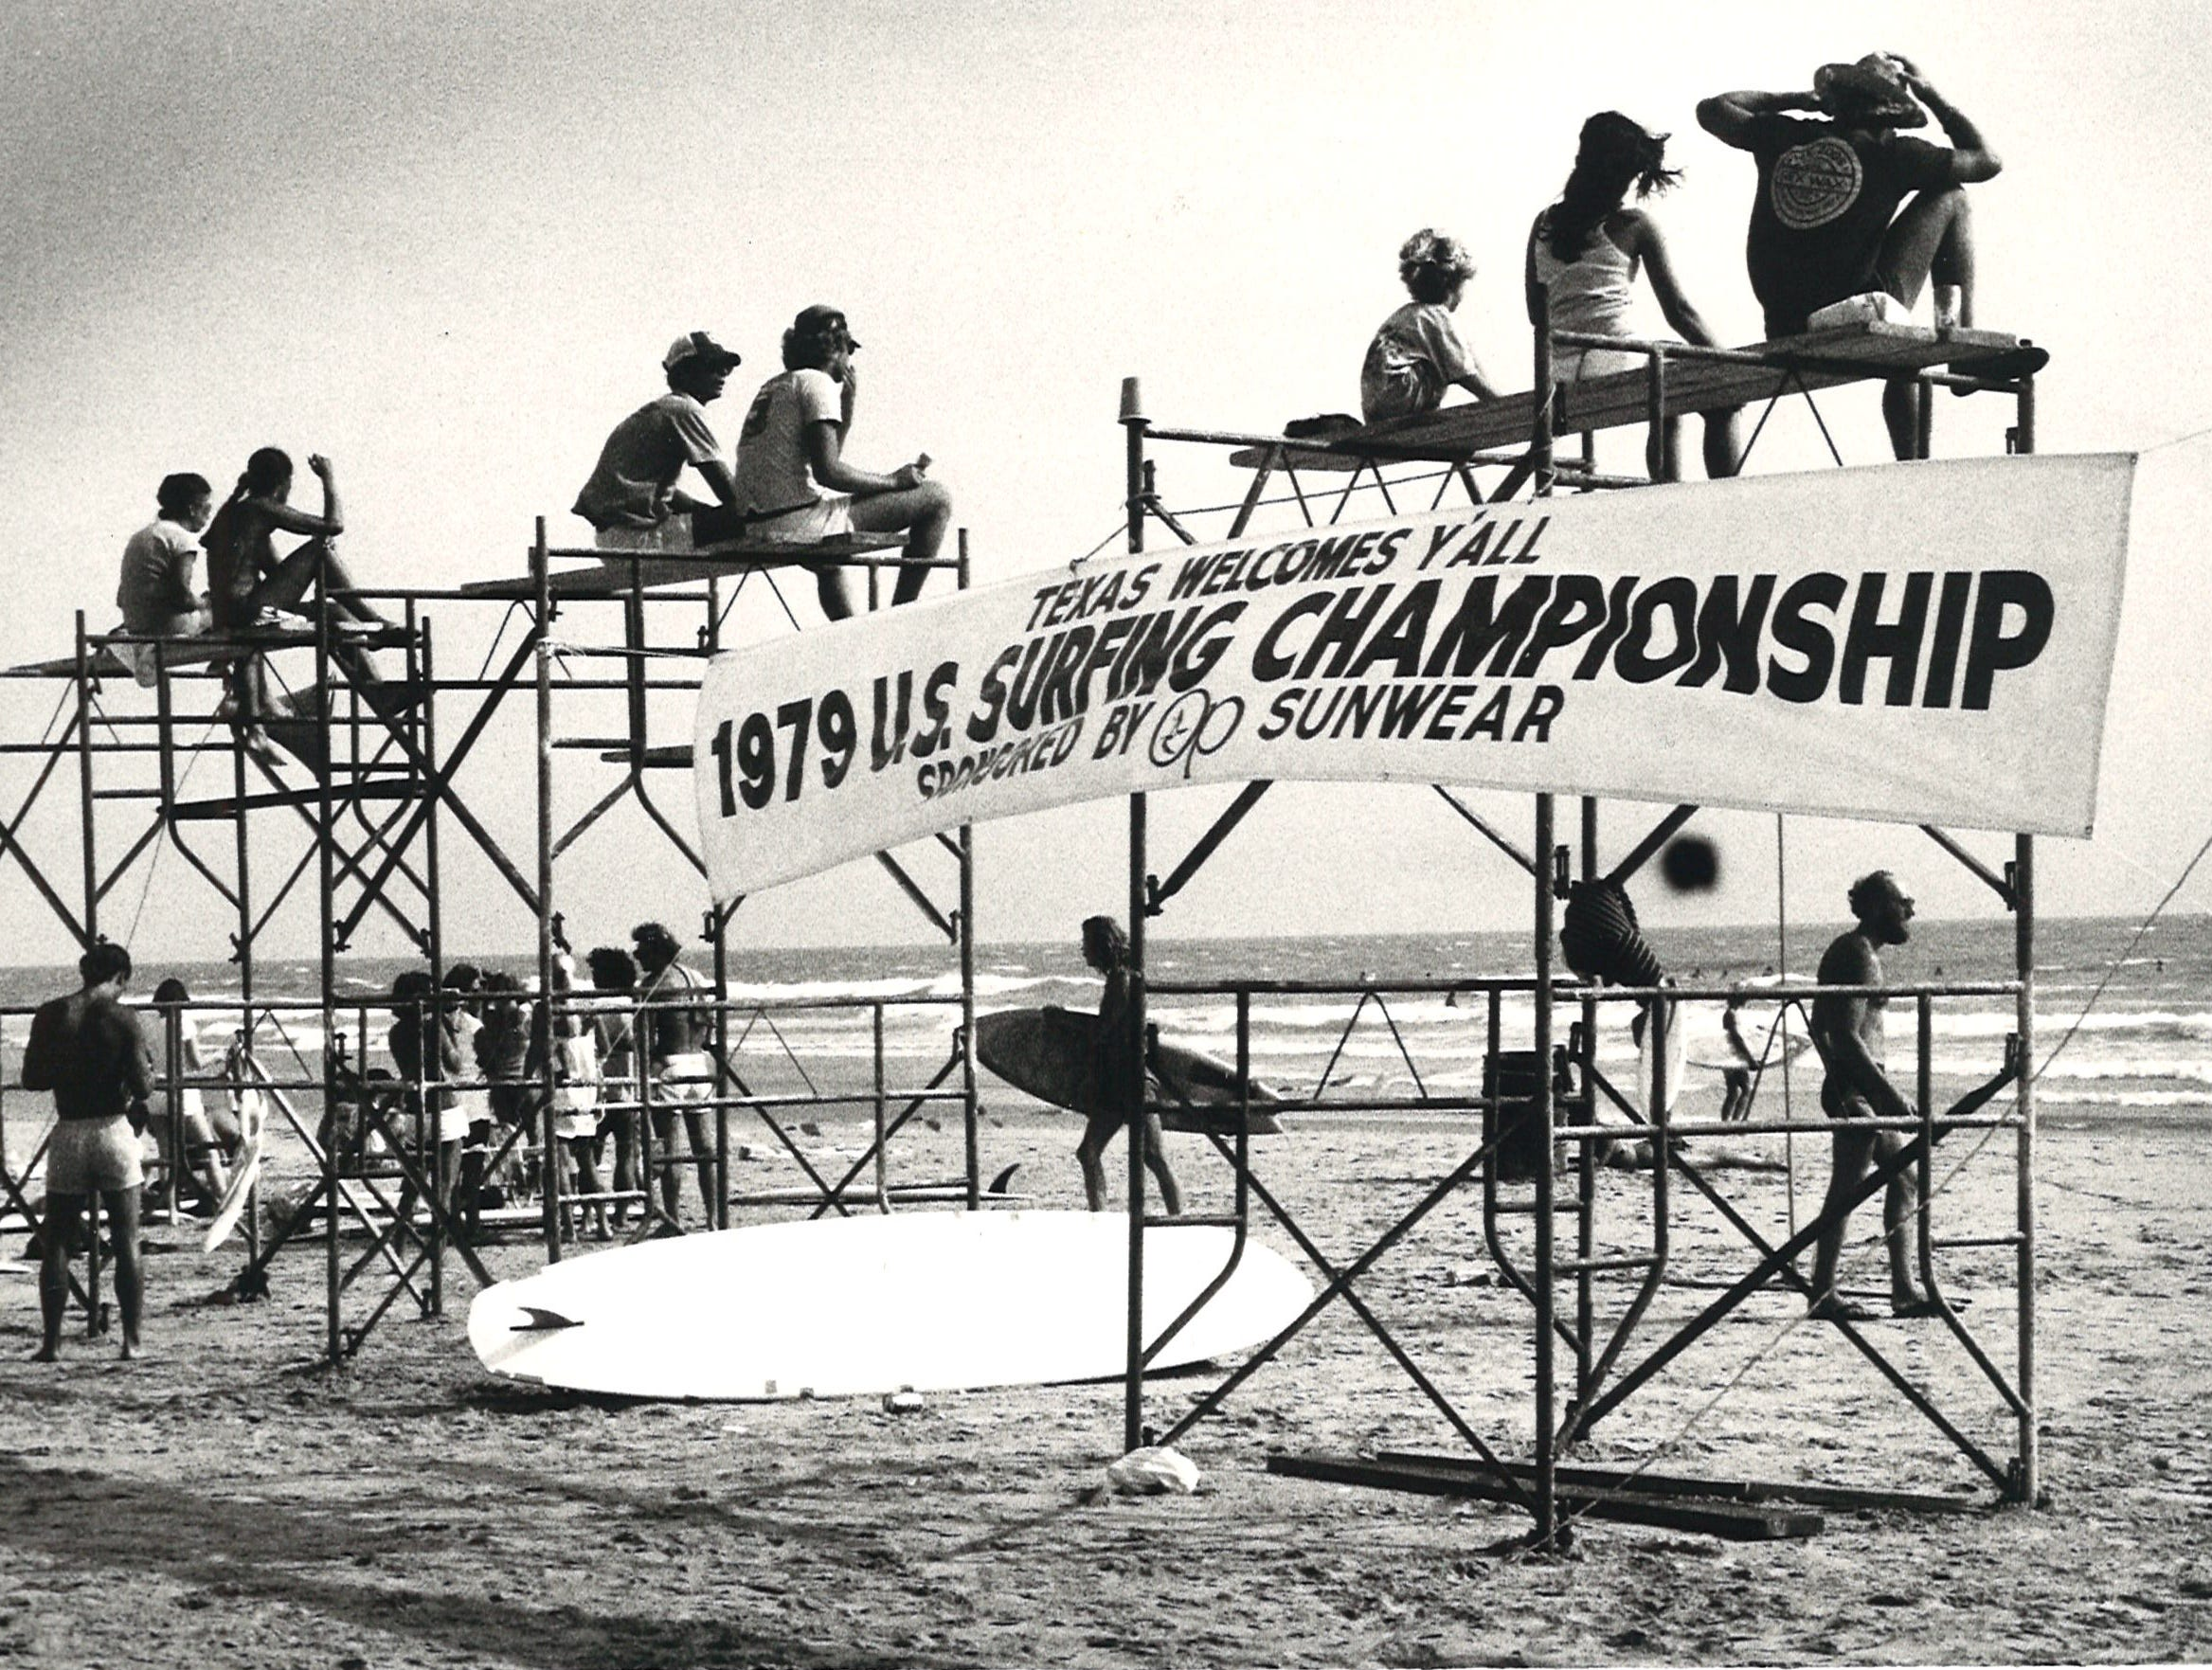 The U.S. Surfing Championship was held in Corpus Christi in 1979.